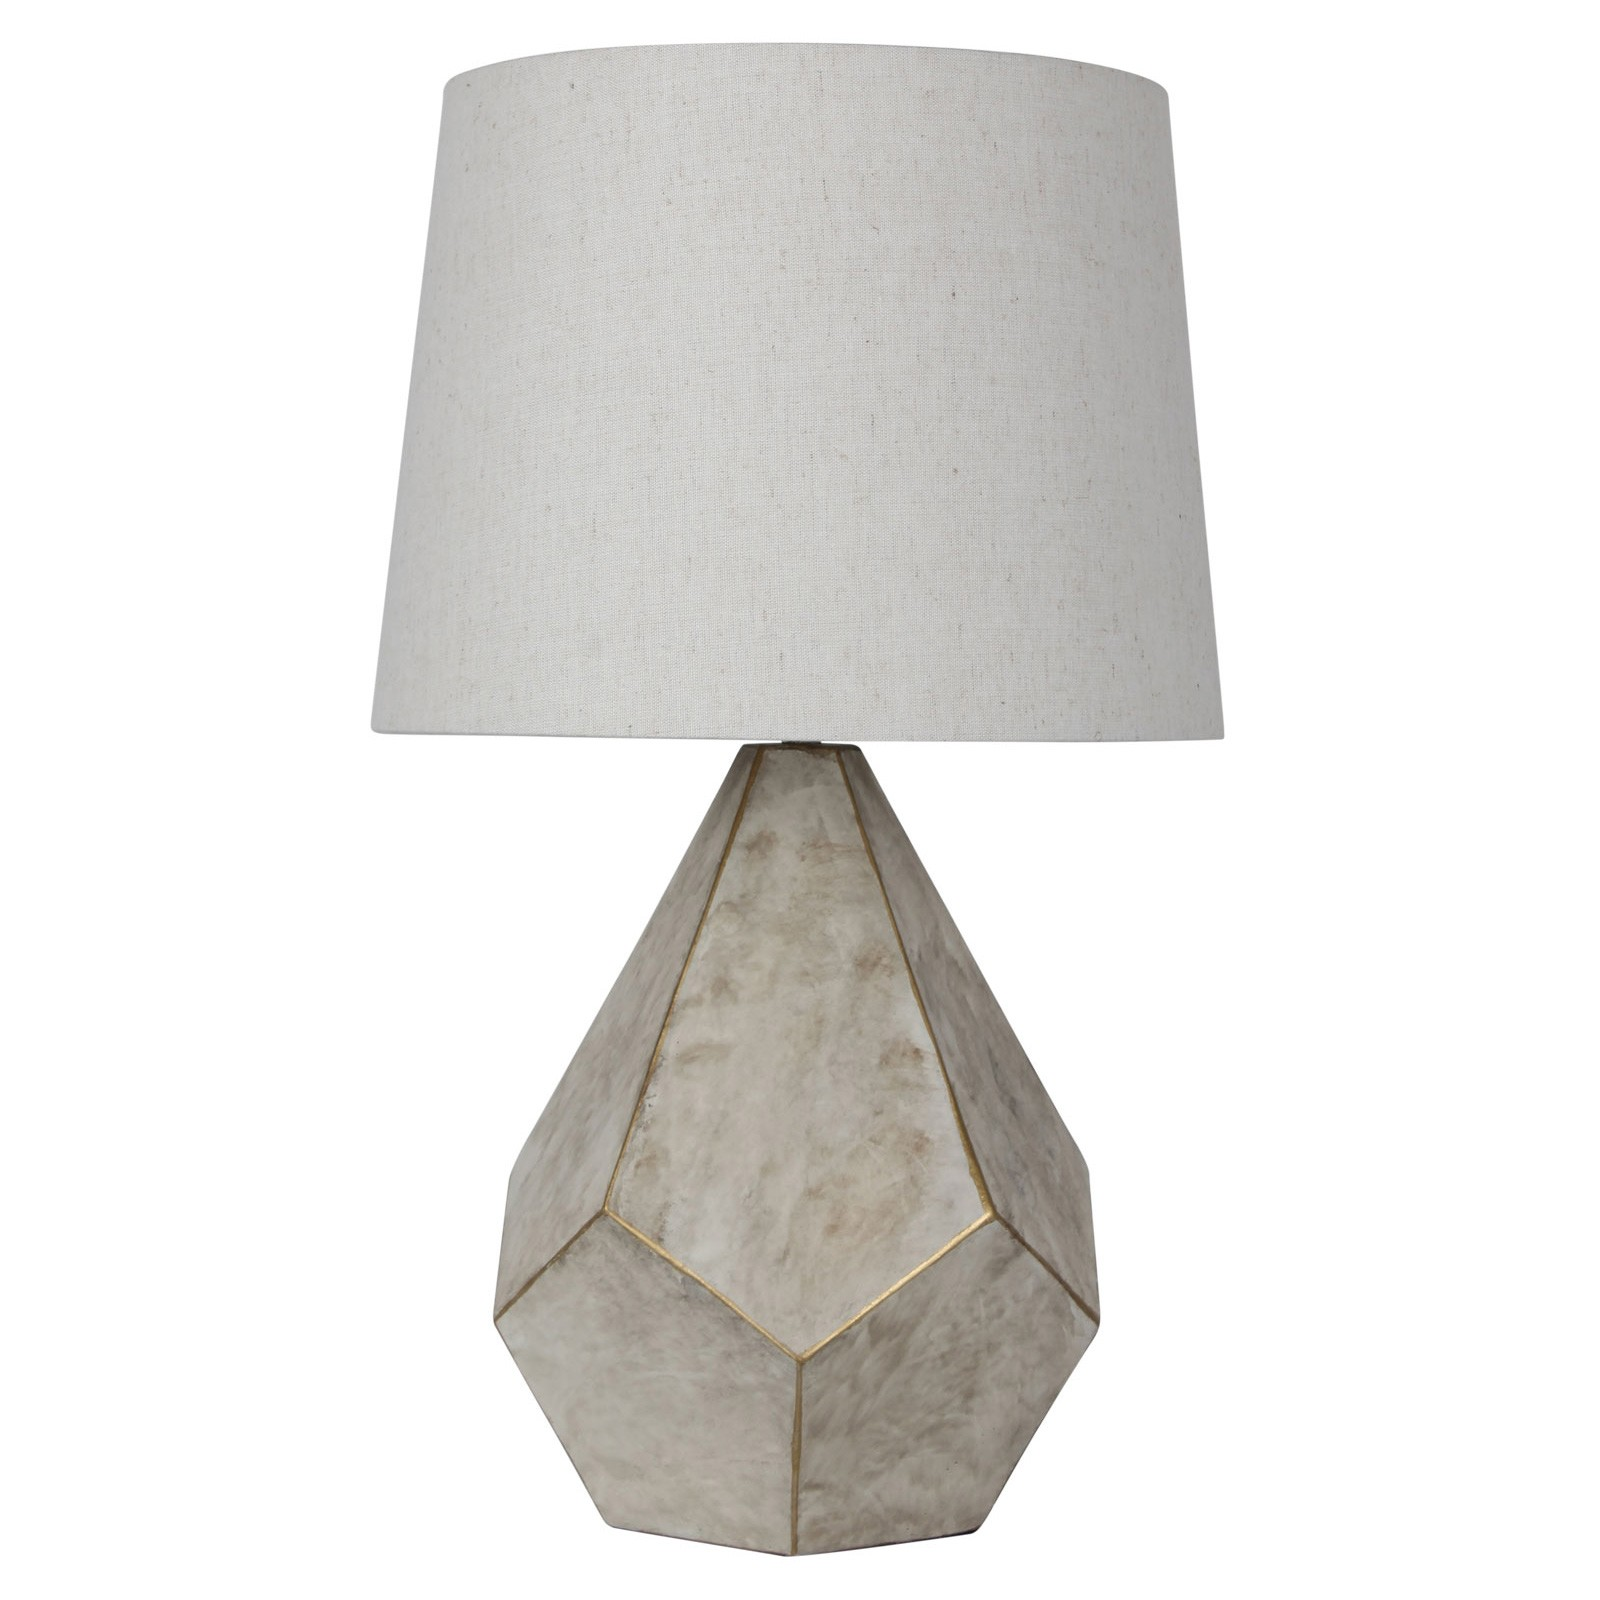 Leon Geometric Table Lamp